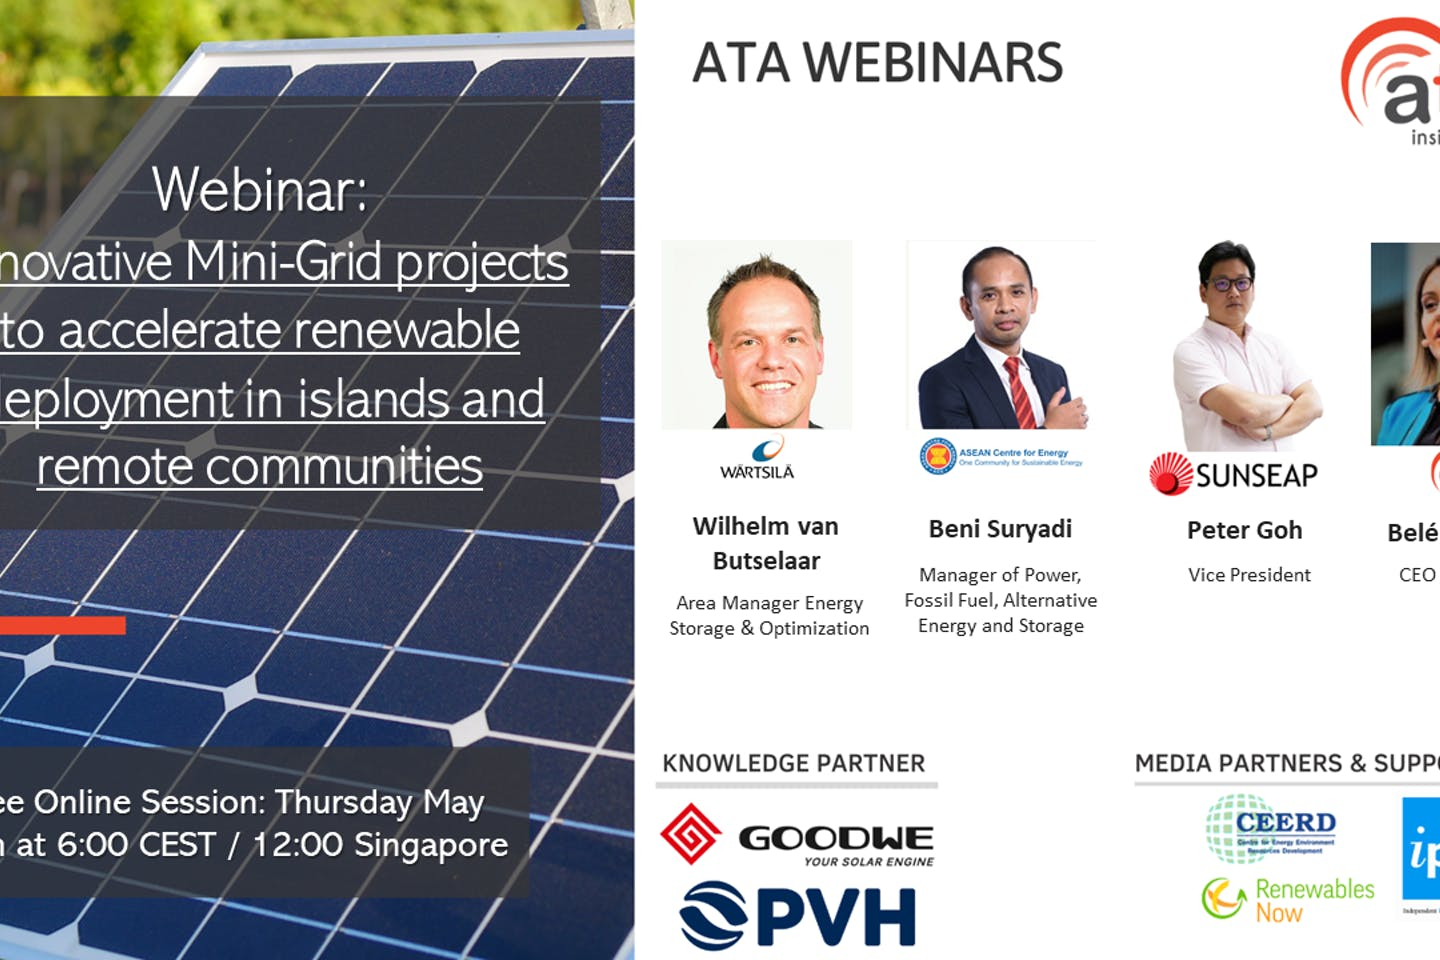 Webinar: Innovative mini-grid projects to accelerate renewable deployment in islands and remote communities